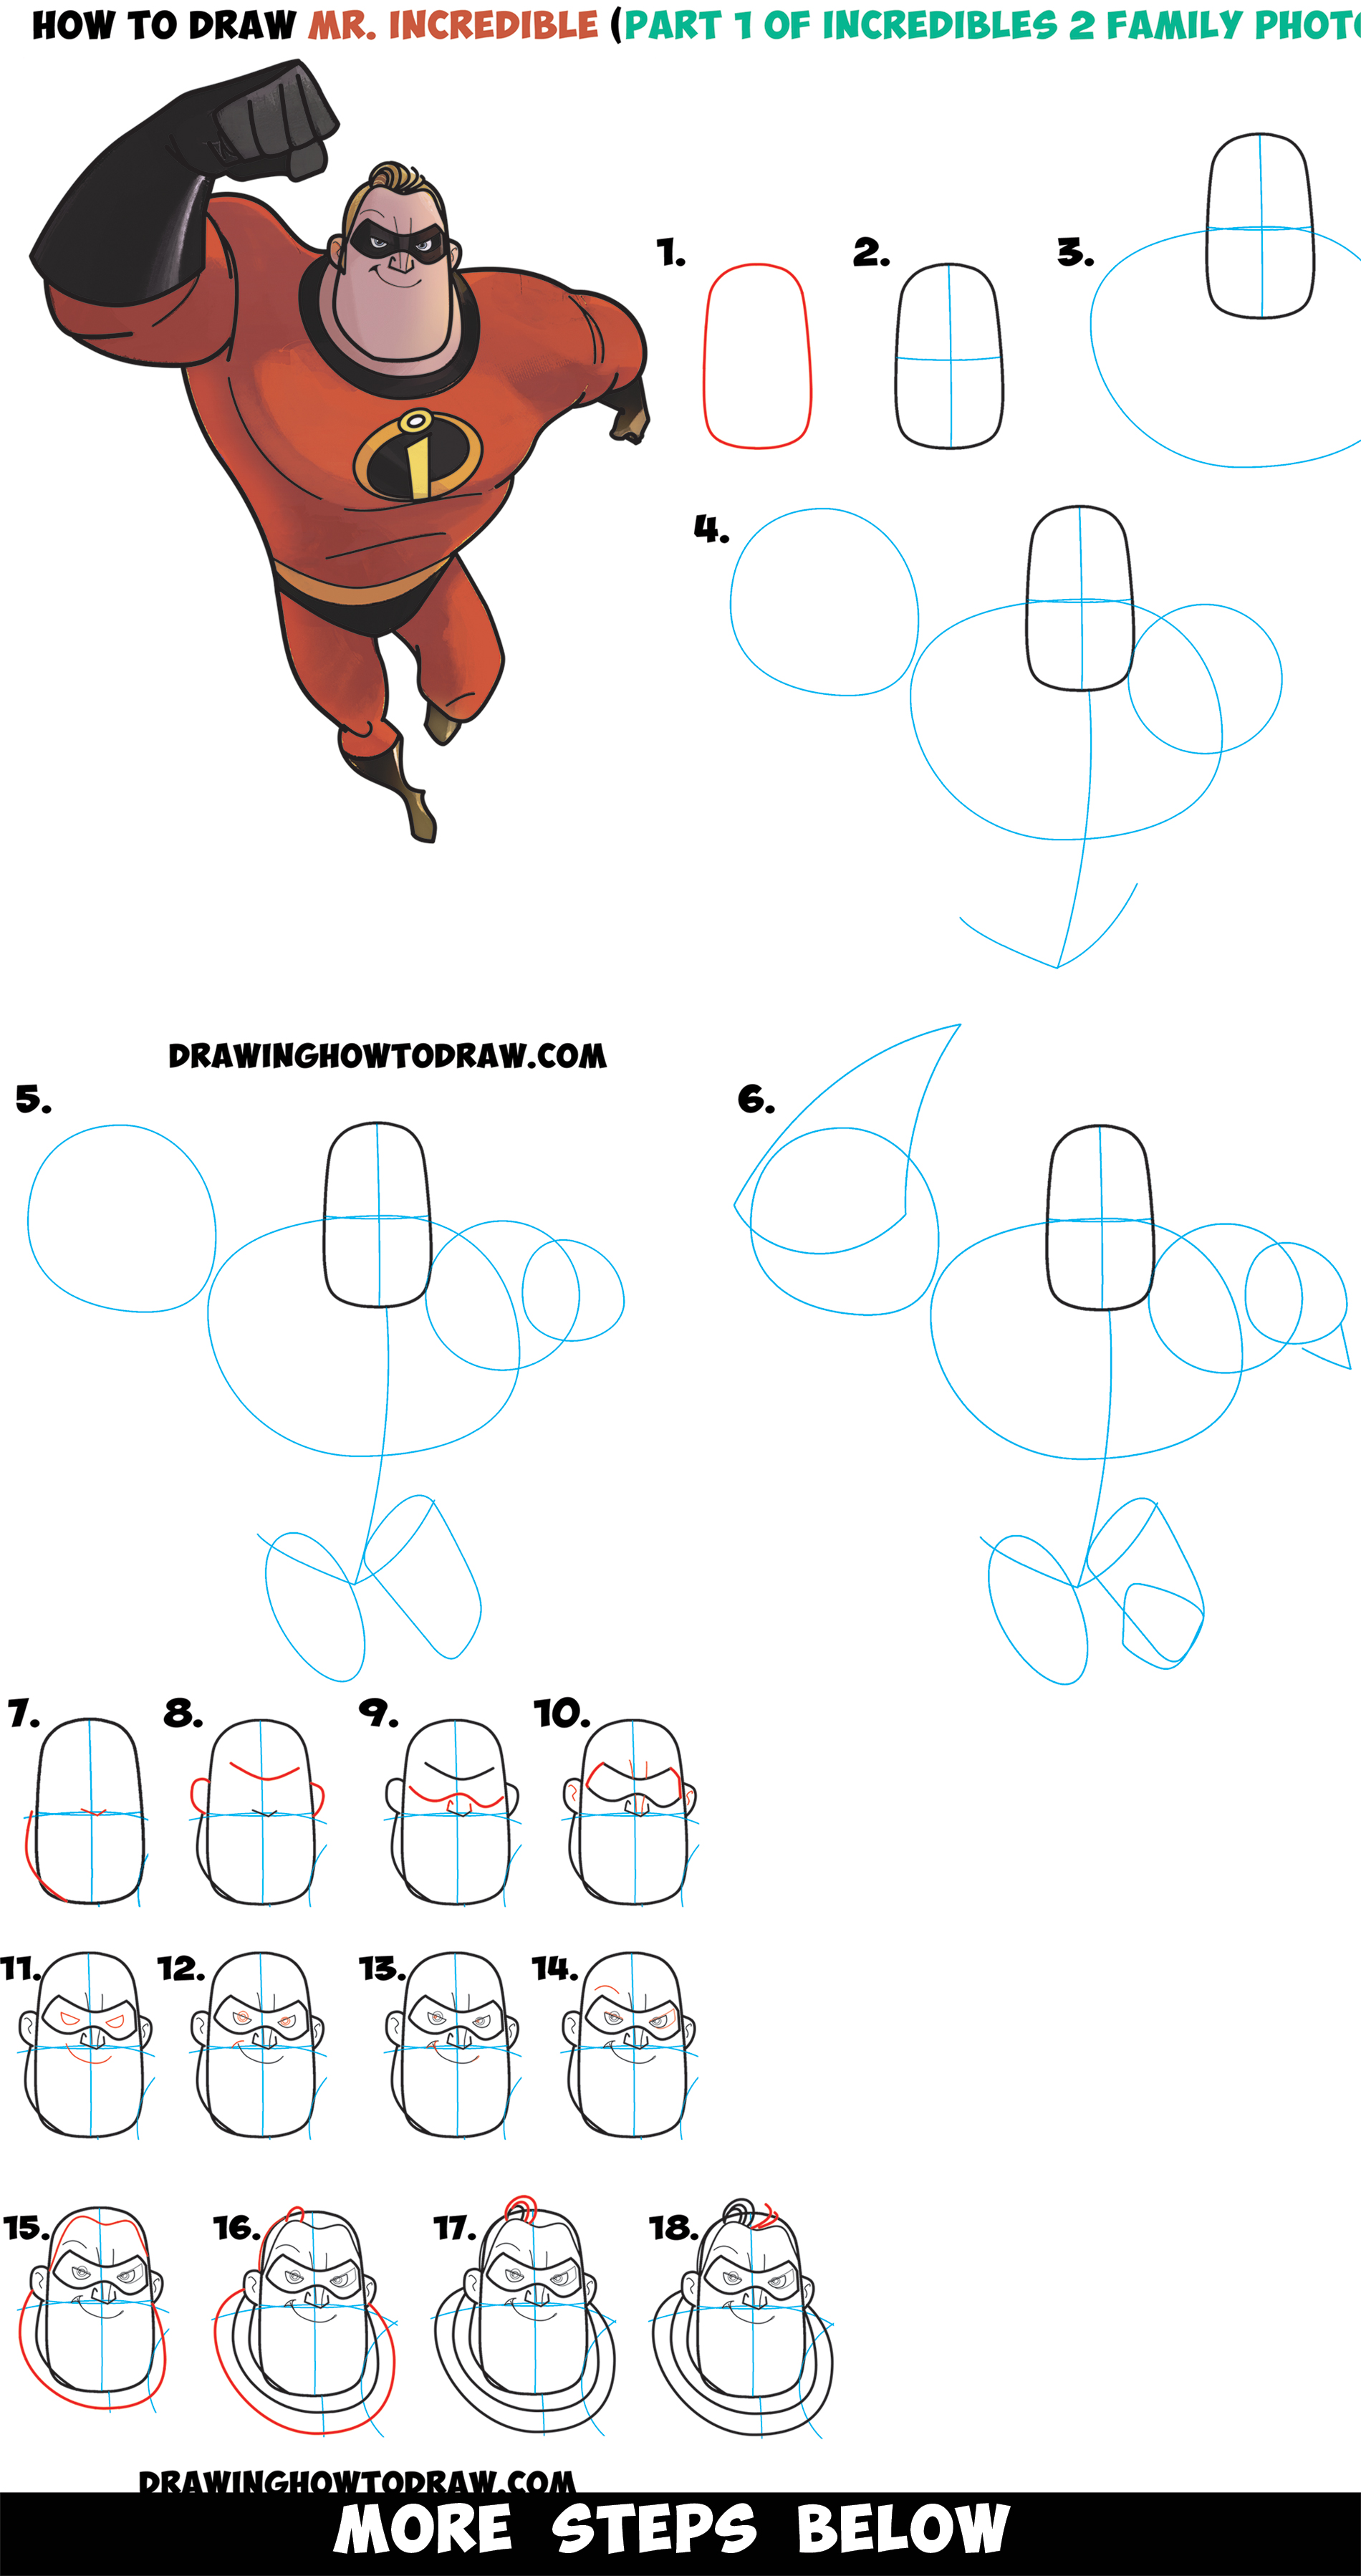 How to Draw Mr. Incredible from The Incredibles 2 (Part 1 of Drawing The Incredibles 2 Family) Easy Step by Step Tutorial